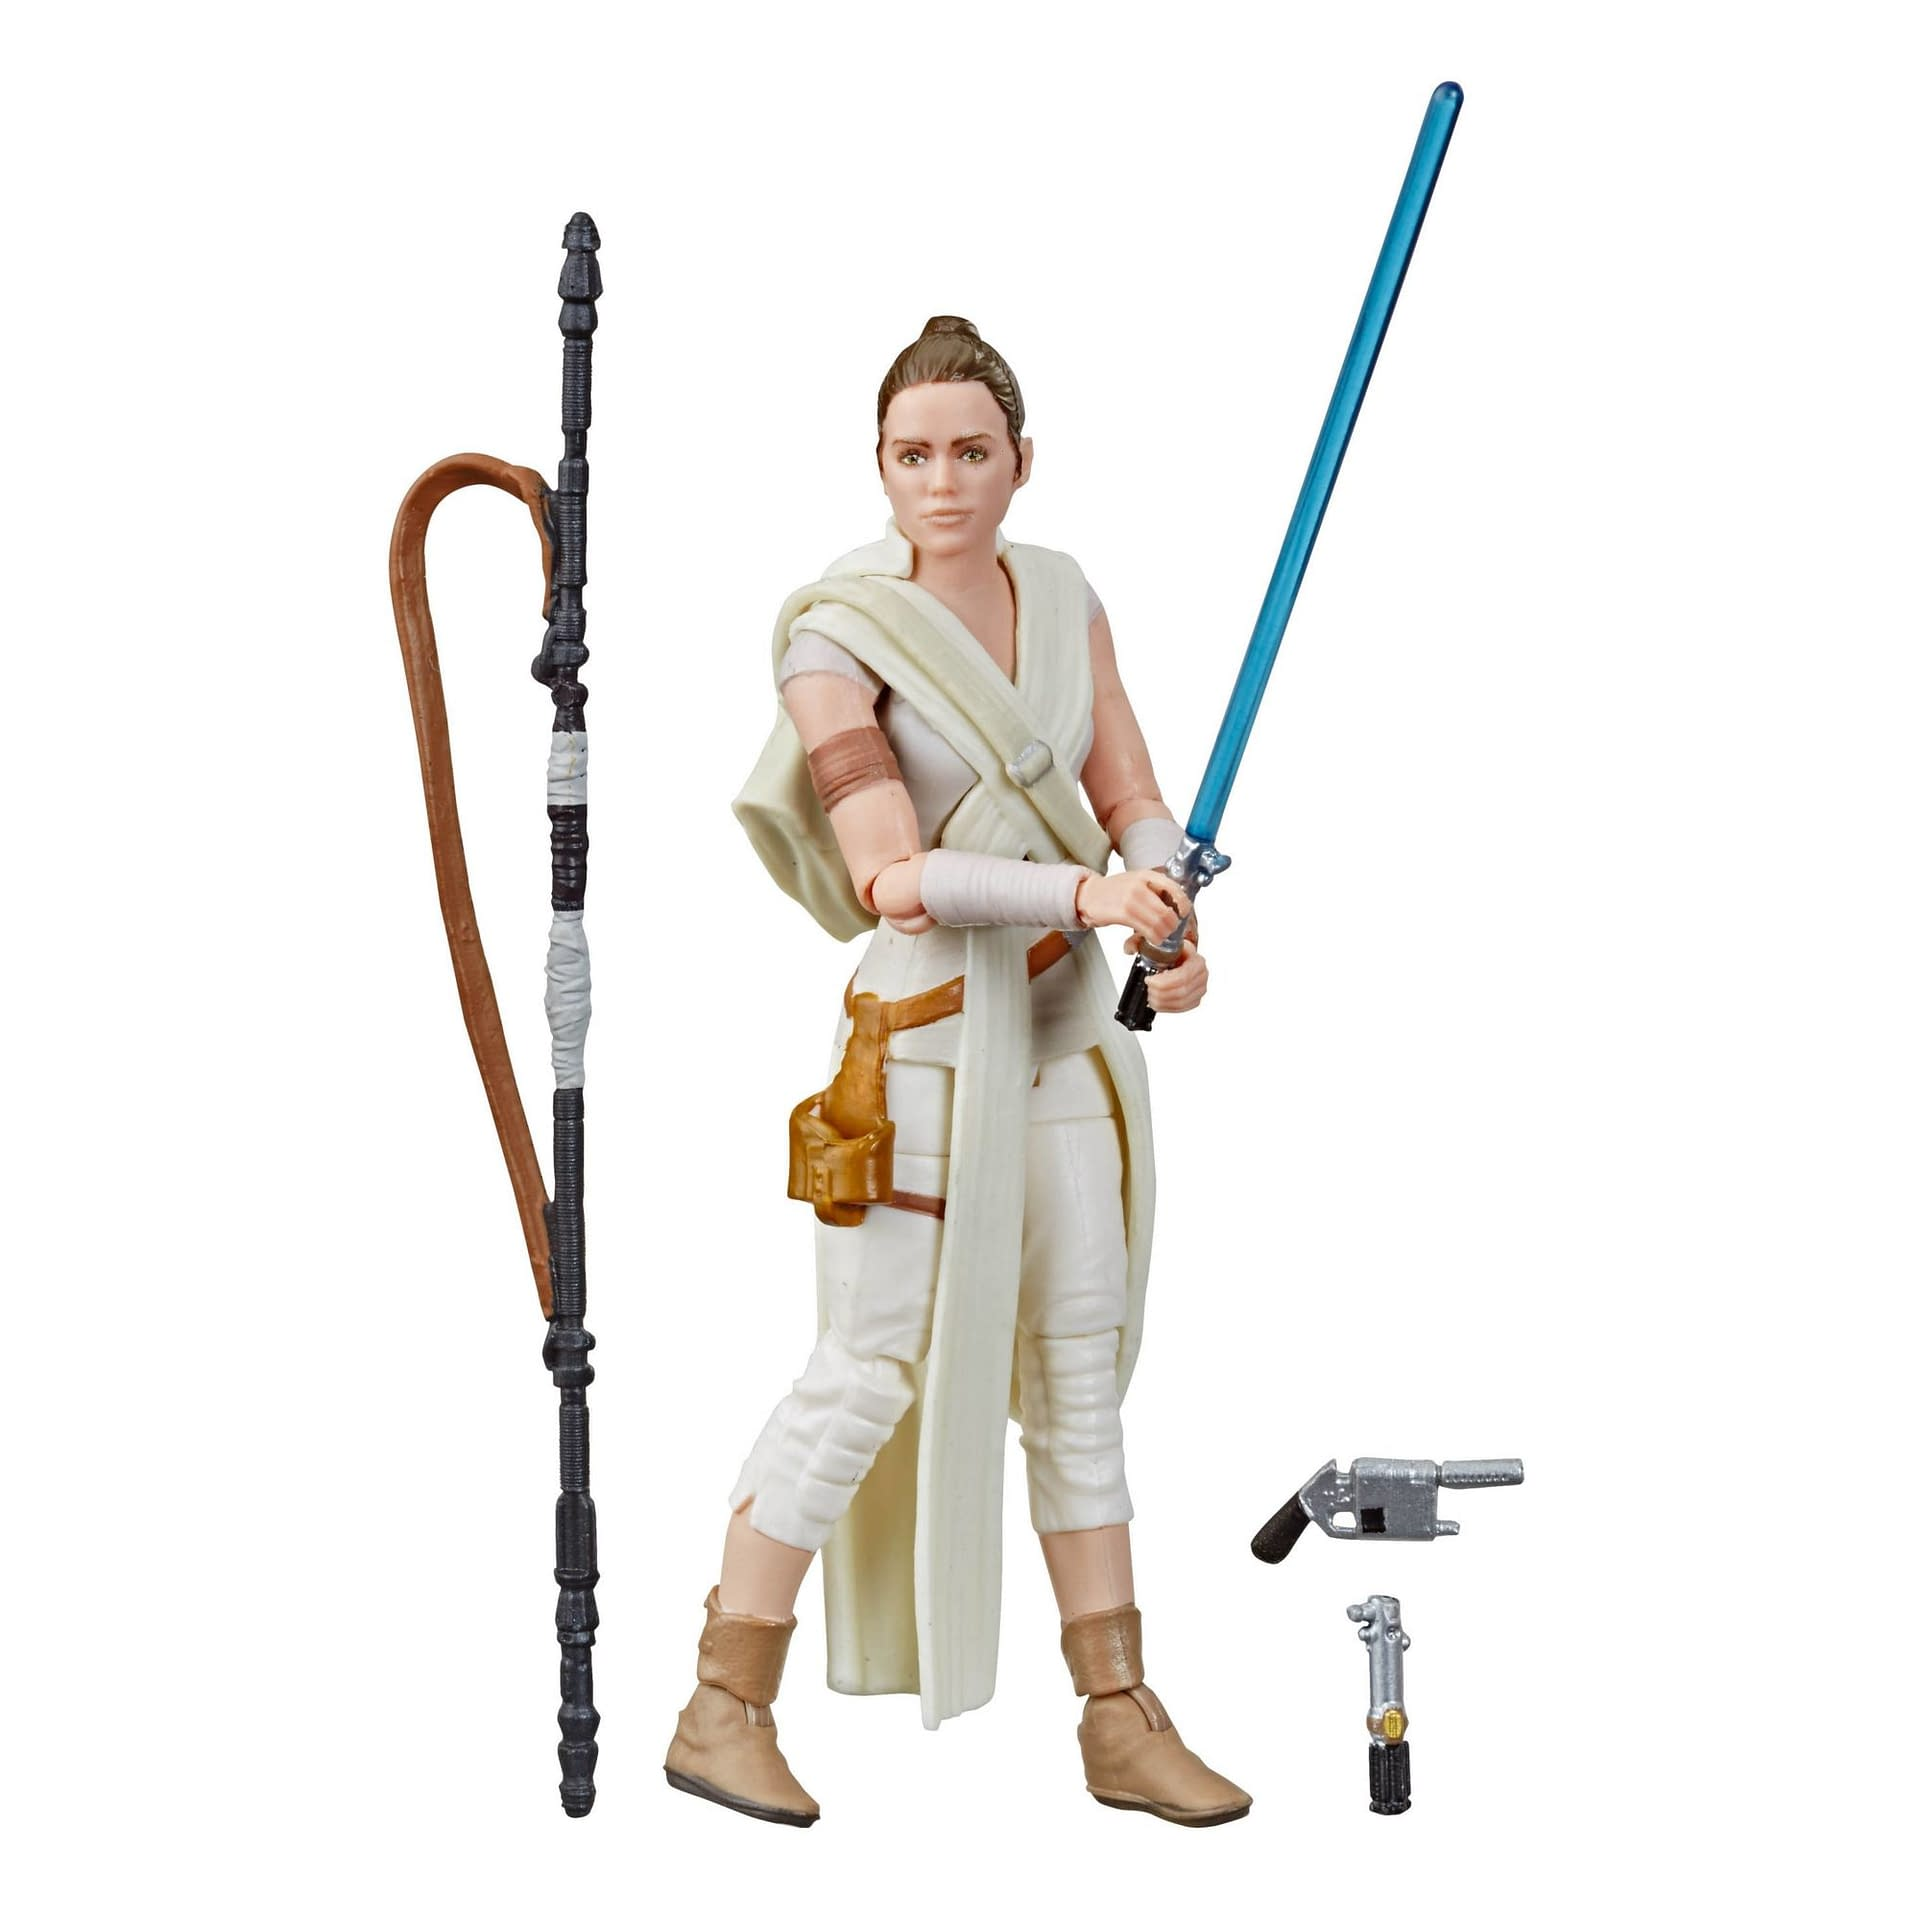 Star Wars: The Vintage Collection is Getting New Figures